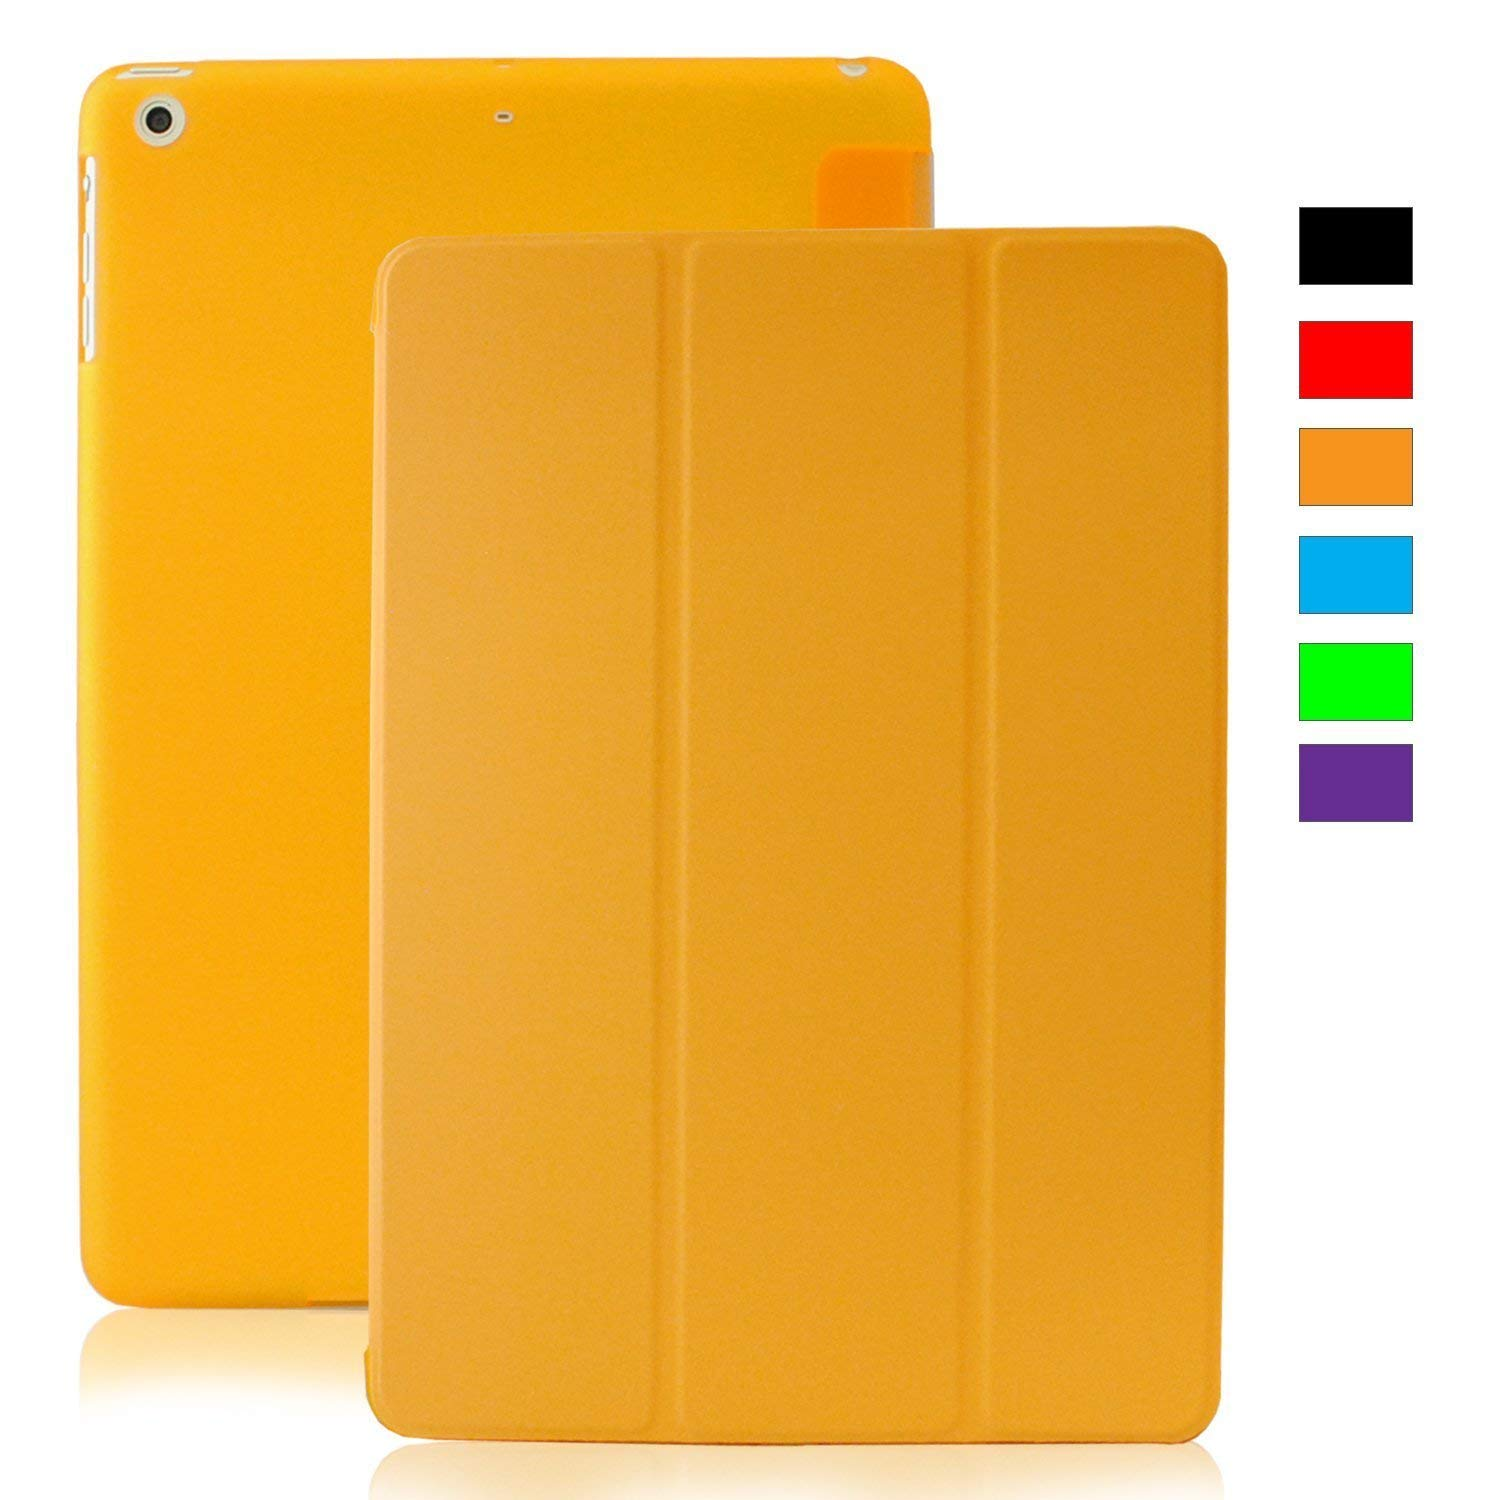 MIIU by Digiparts Ultra Thin Magnetic Smart Cover & Clear Back Case for Apple iPad Air(5th Gen), Yellow - image 5 of 5